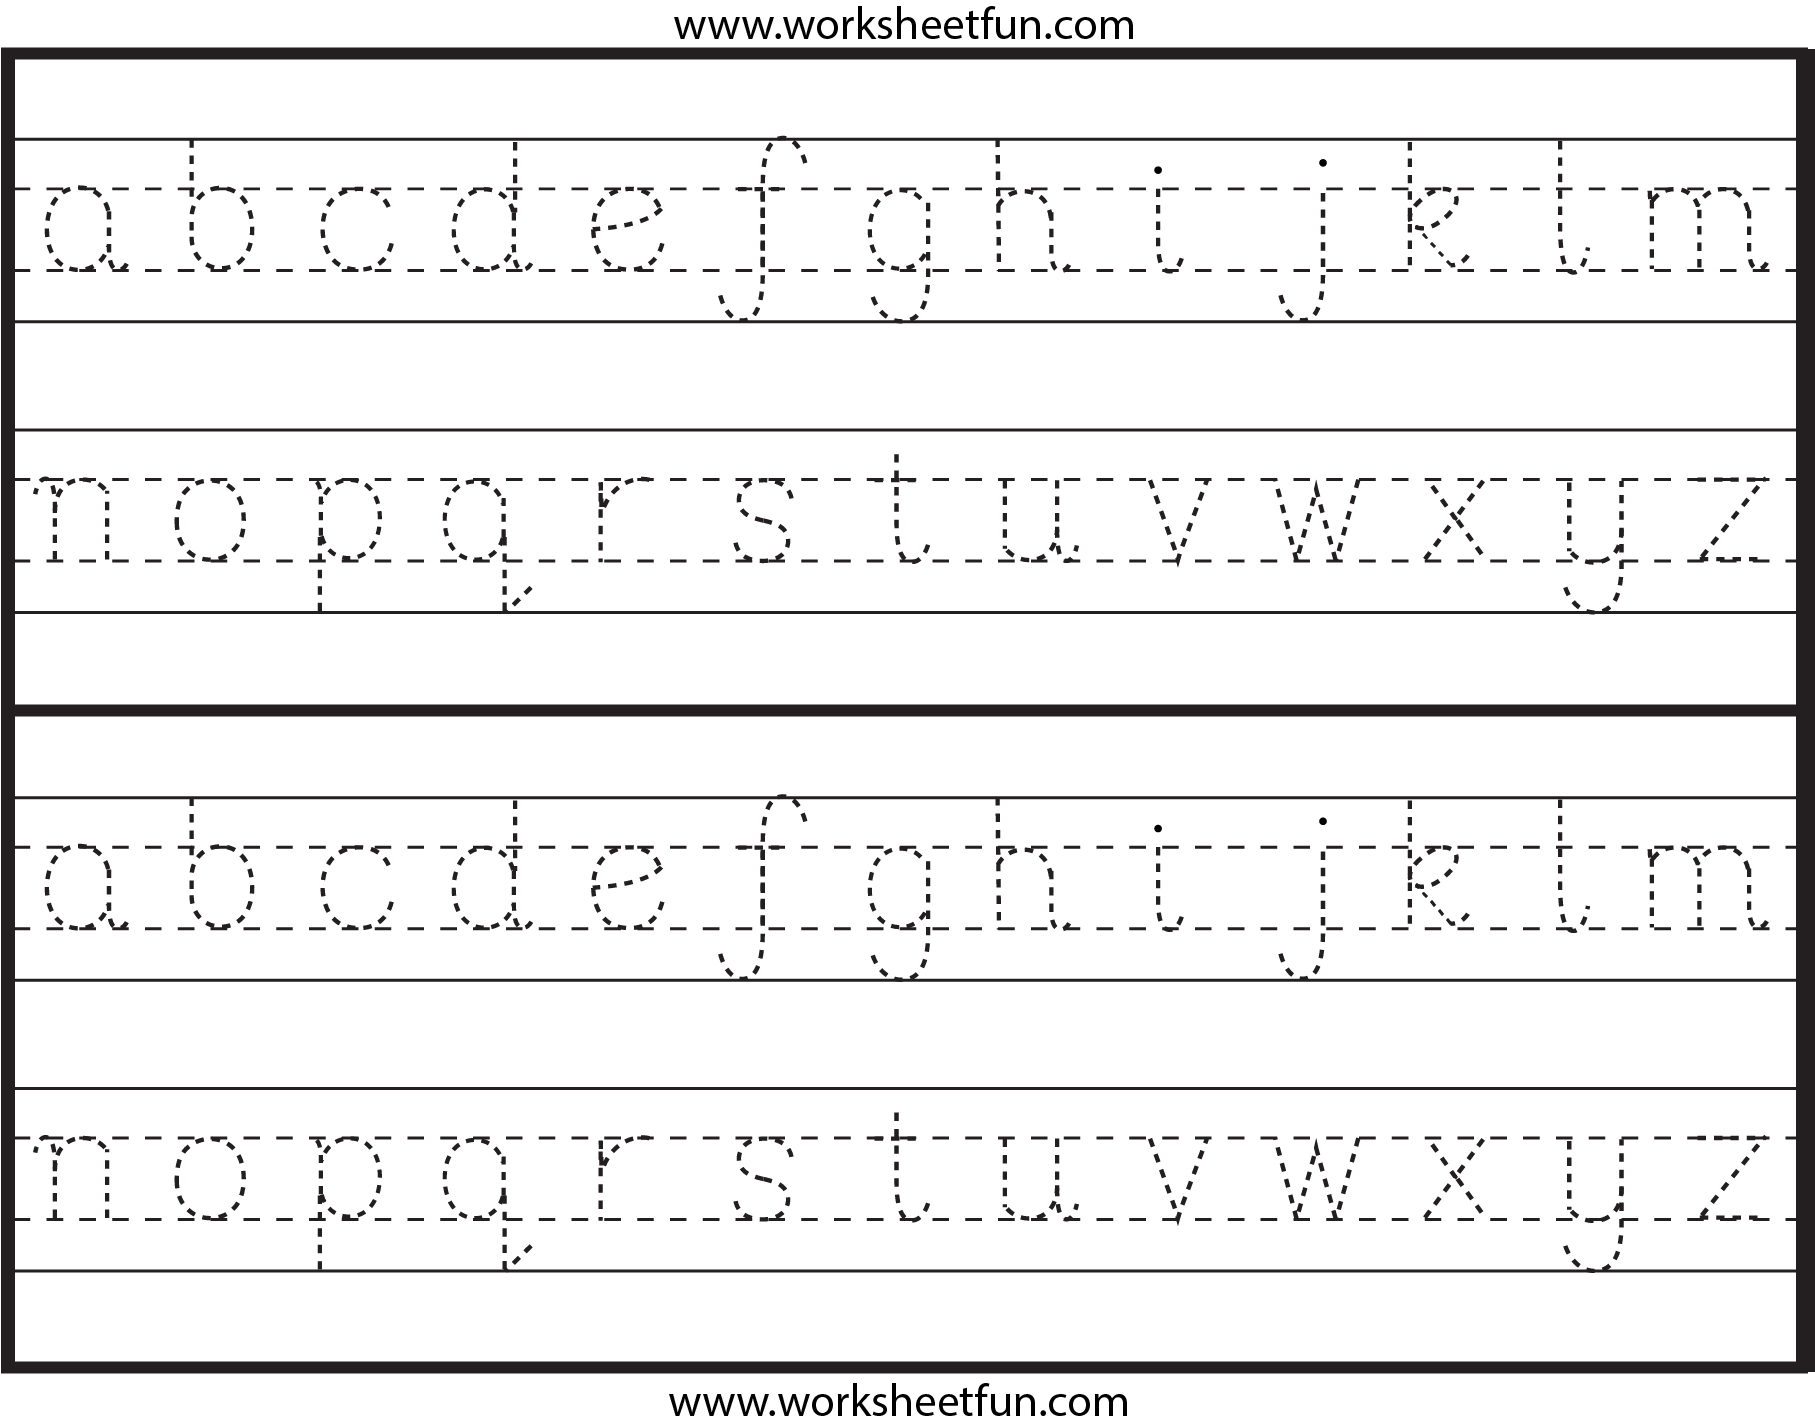 Worksheets Free Printable Alphabet Worksheets A-z here you can find some new design about tracing the alphabet english worksheet for kindergarten that print free available in various template to including lett